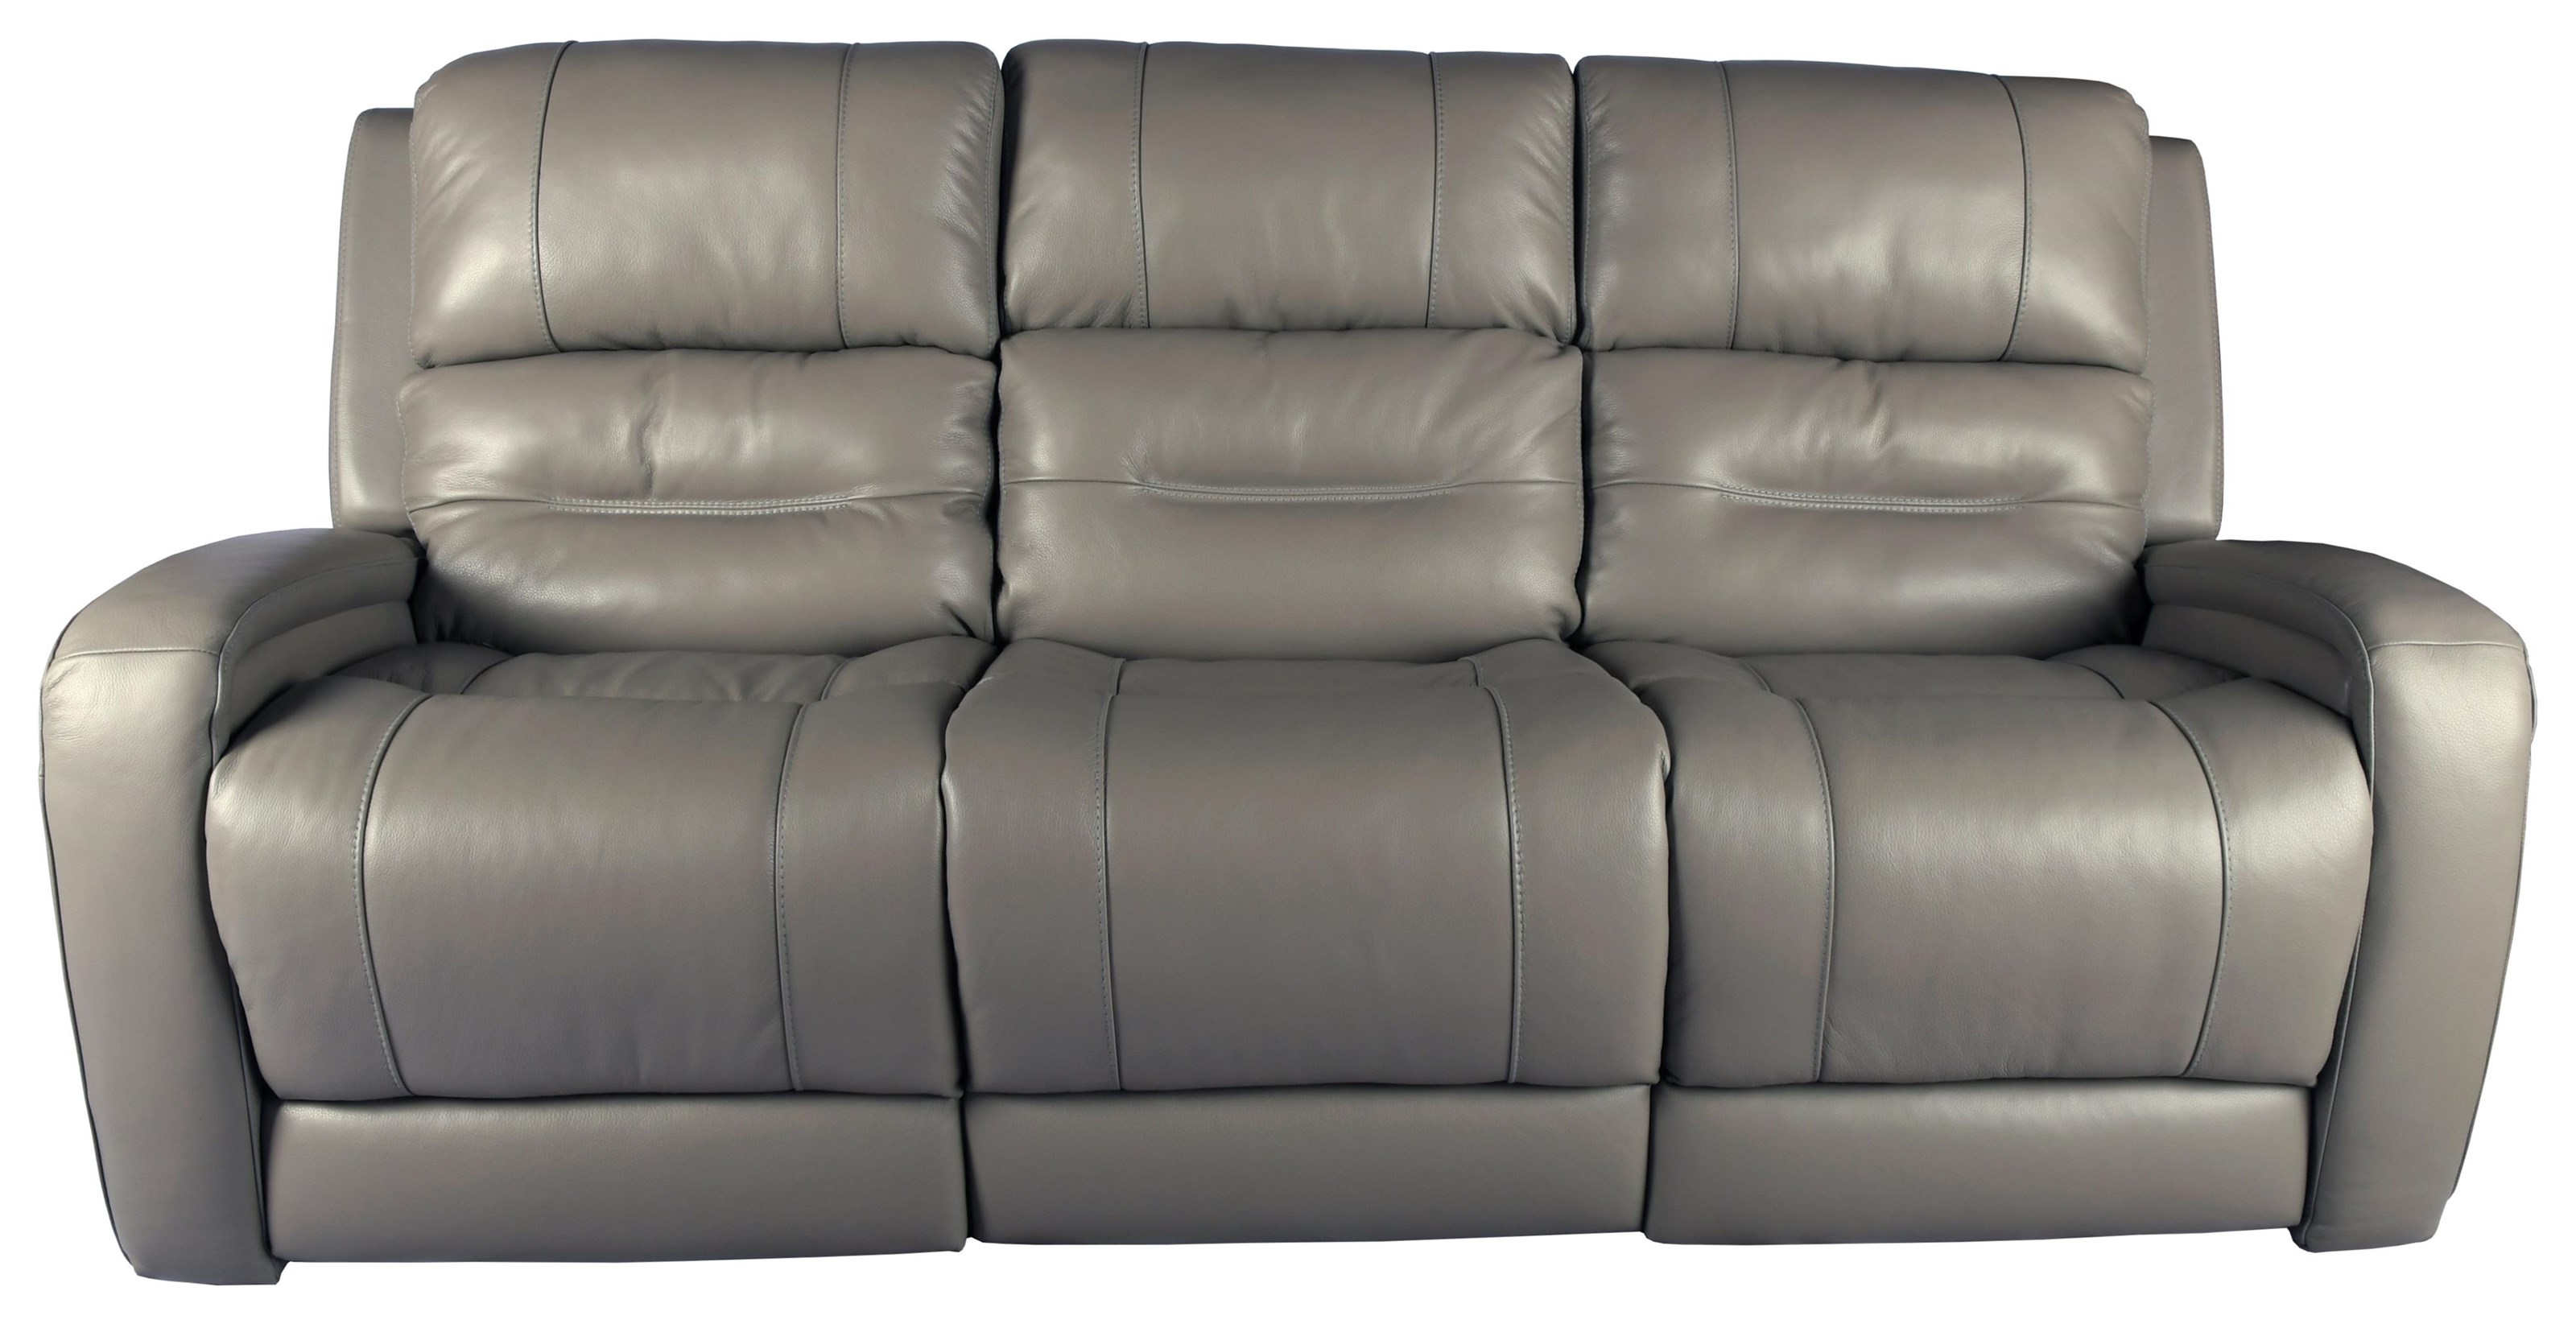 Frazer Leather Reclining Sofa by Rockwood at Bennett's Furniture and Mattresses